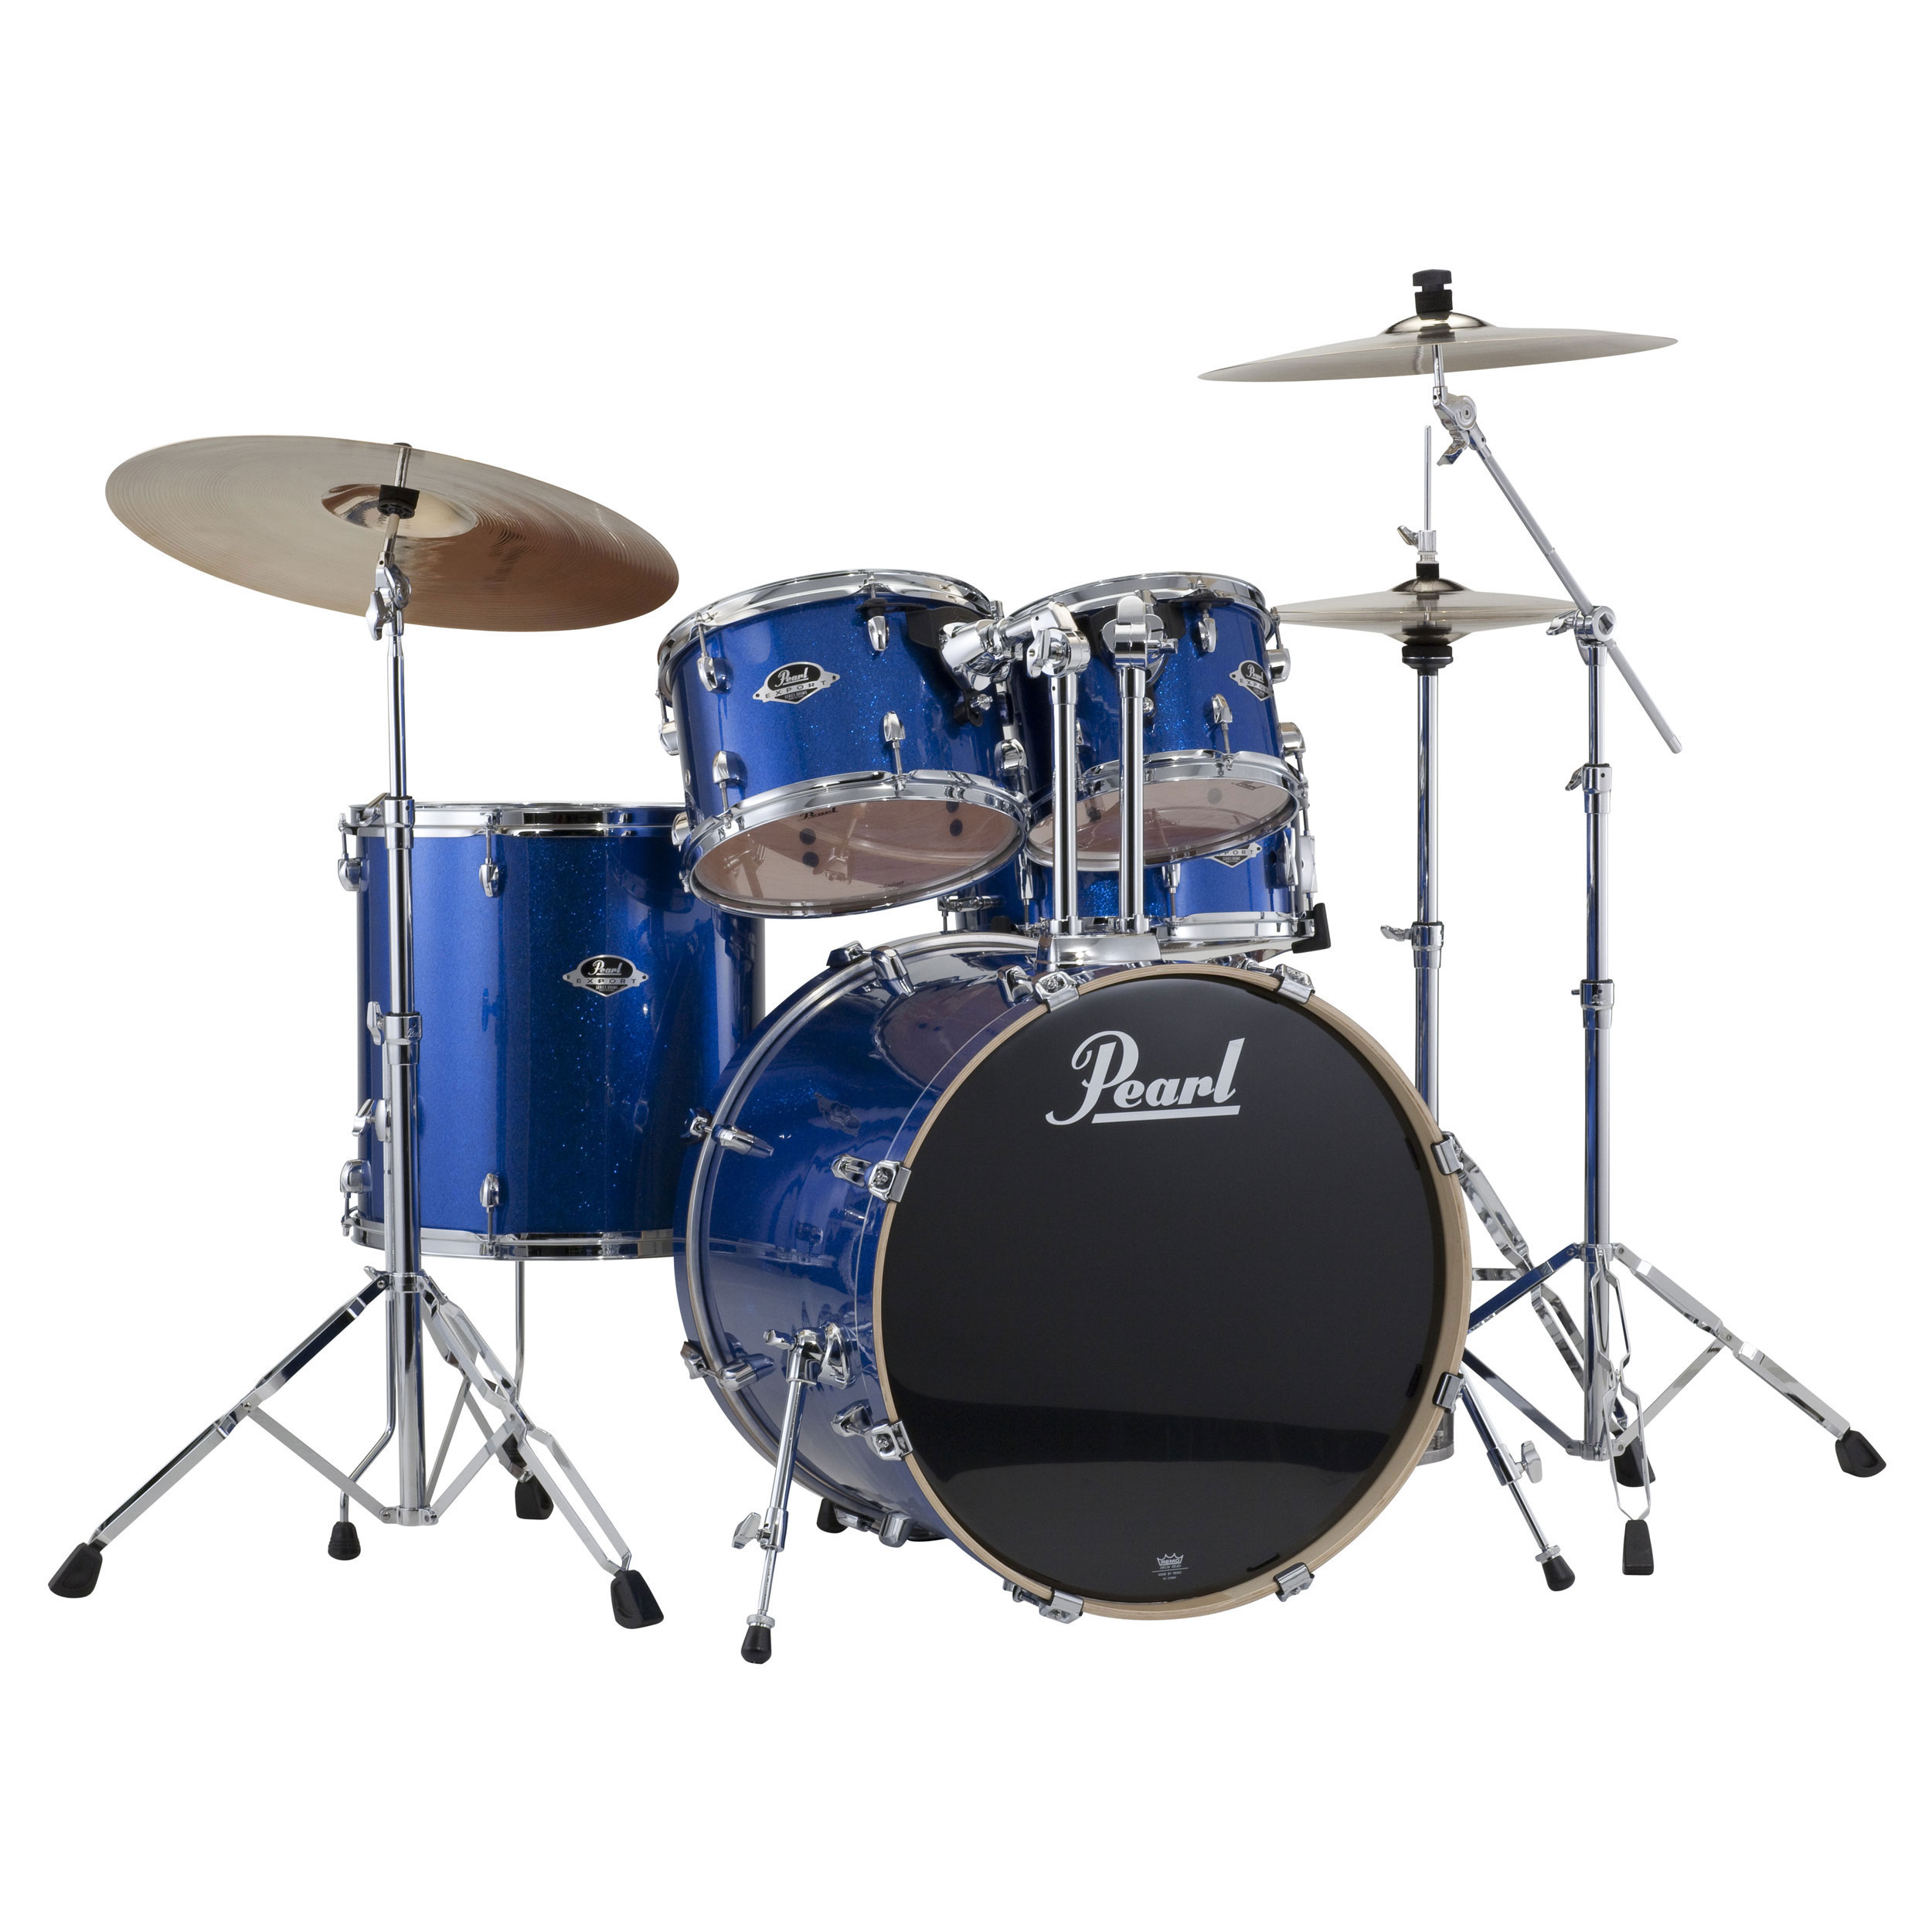 "Pearl EXX Export 5-Piece Drum Set with Hardware (20"" Bass, 10/12/14"" Toms, 14"" Snare)"